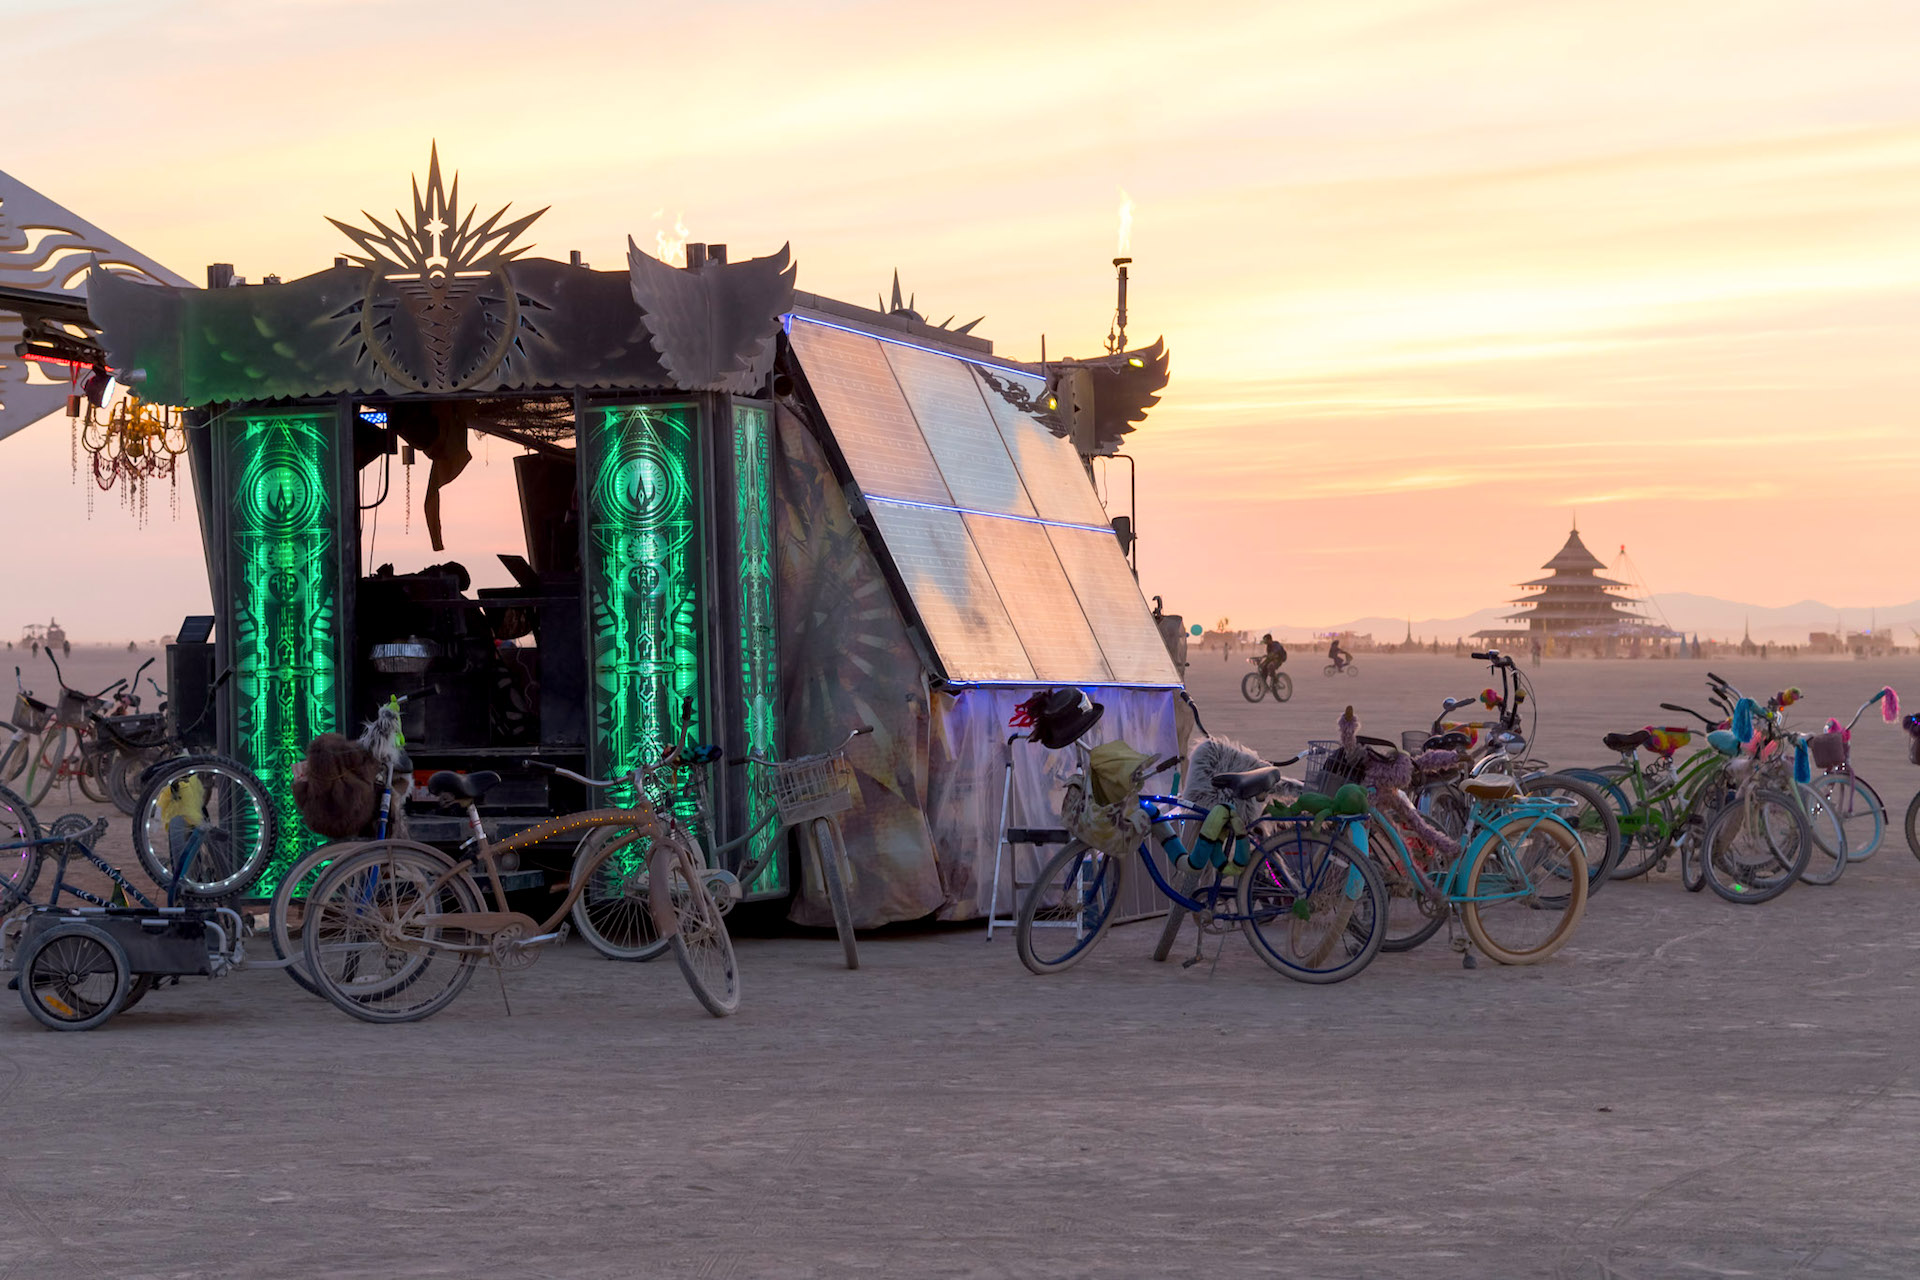 Sonnenglas Lantern Offical Website Ivanpah Solar Power Facility Electricity Generation System A Powered Mobile Soundstage At Burning Man 2016 Solarbeatz